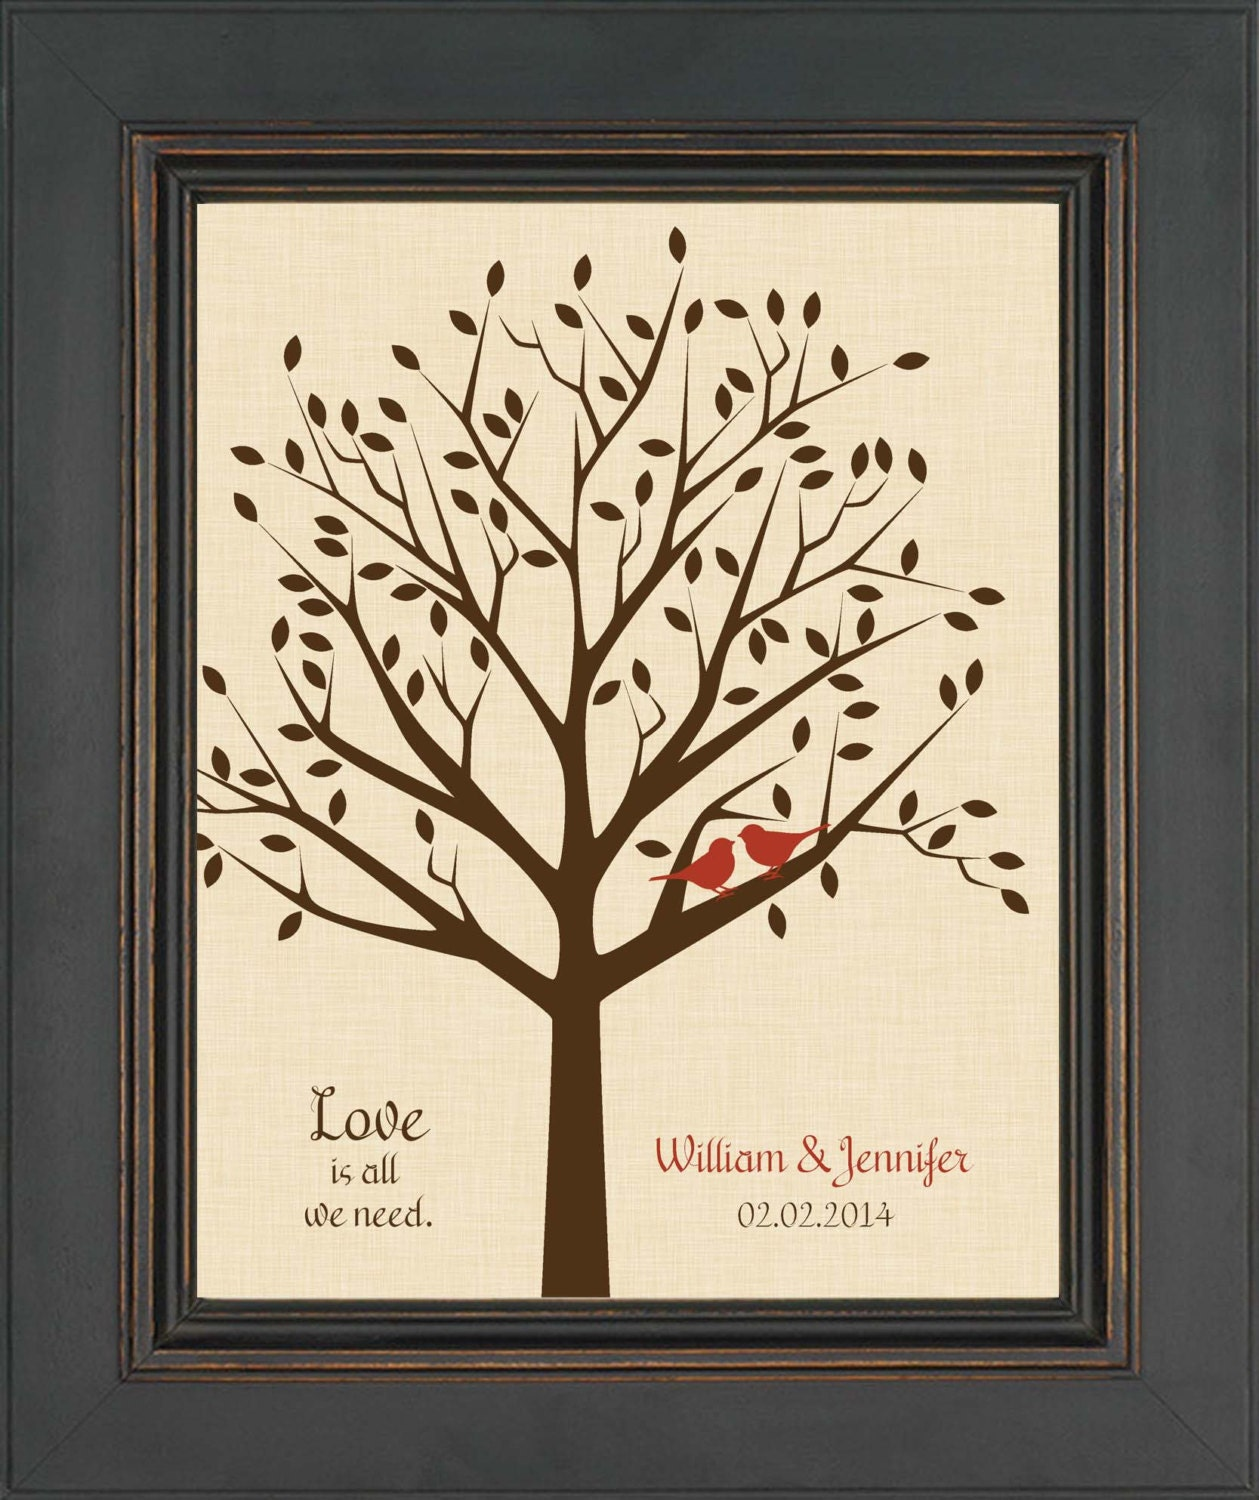 Wedding Gifts For Couples: Personalized Wedding Gift For Couple Valentine's Day